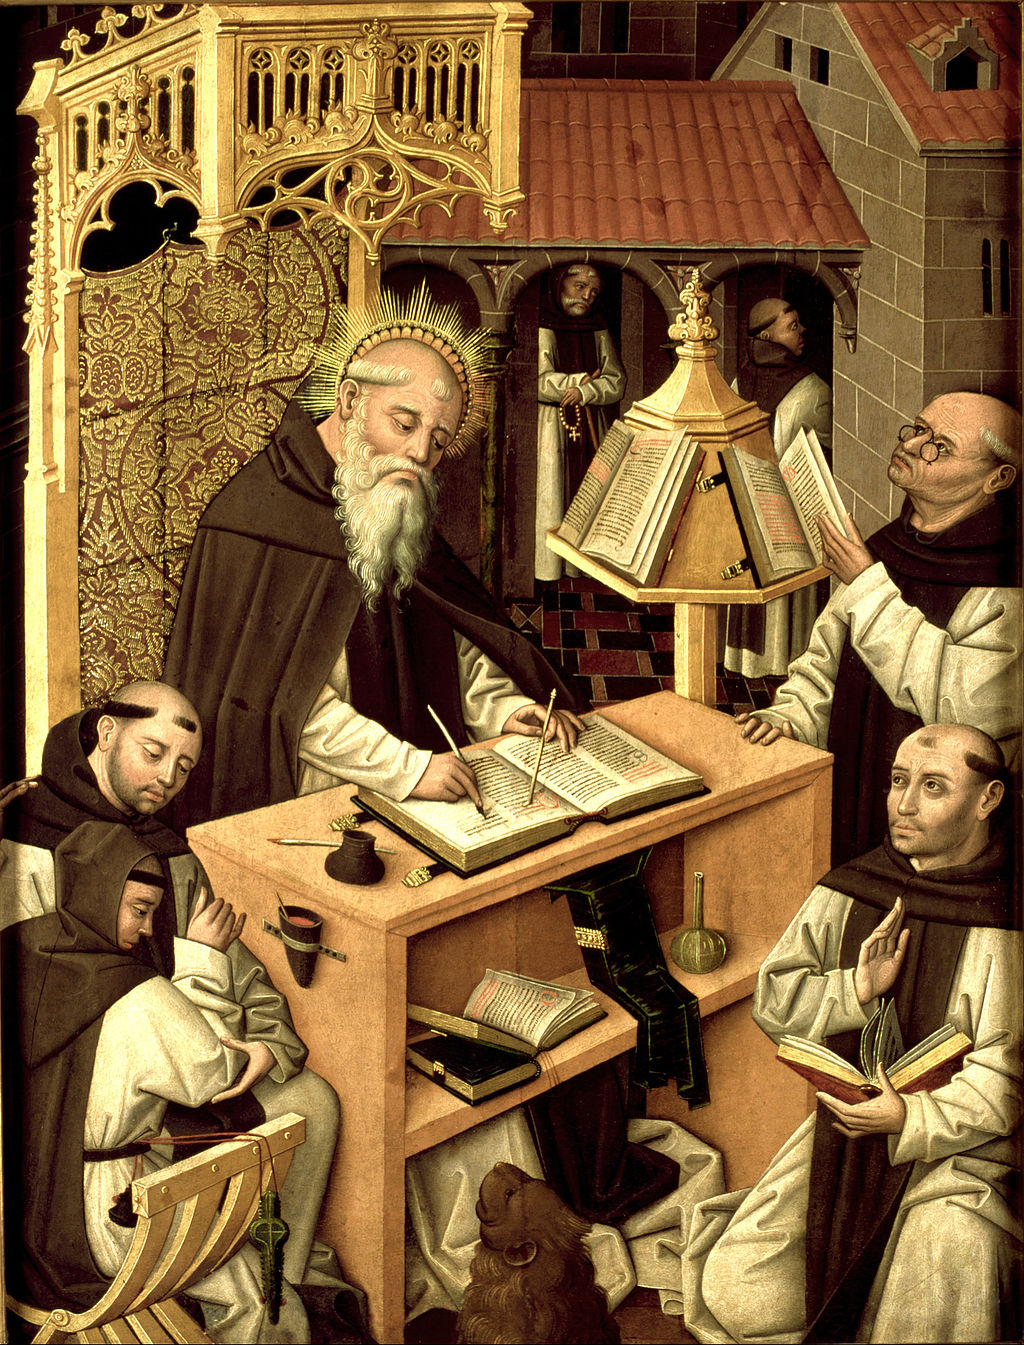 St. Jerome in the scriptorium